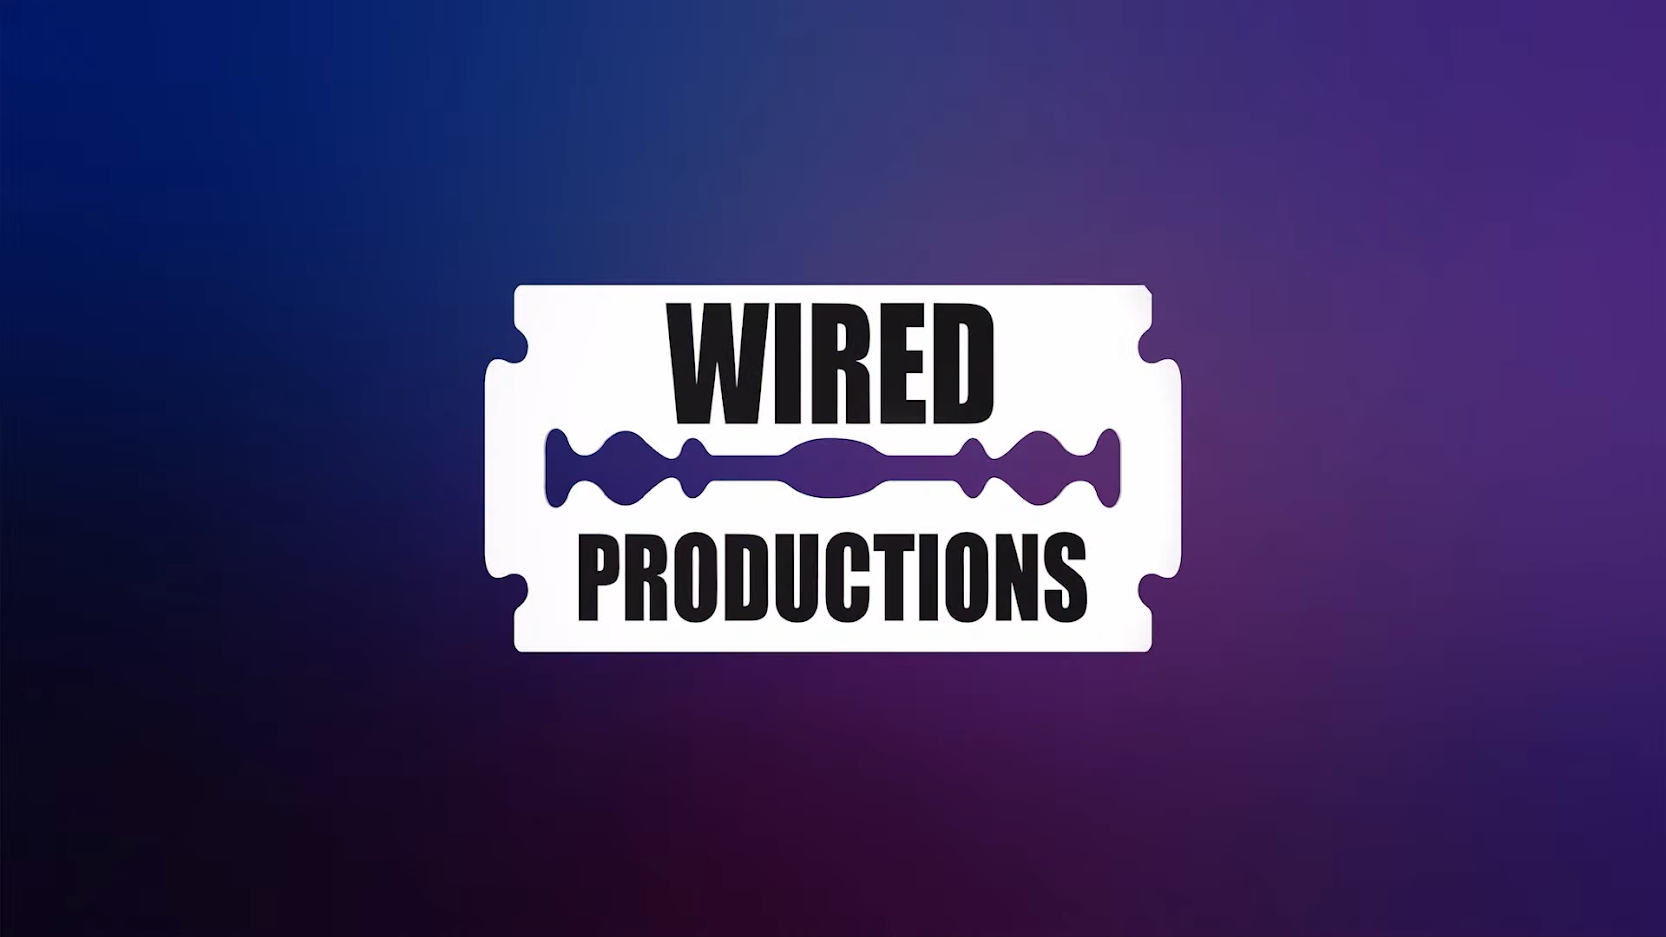 Wired Direct Shows off Some impressive new games and content